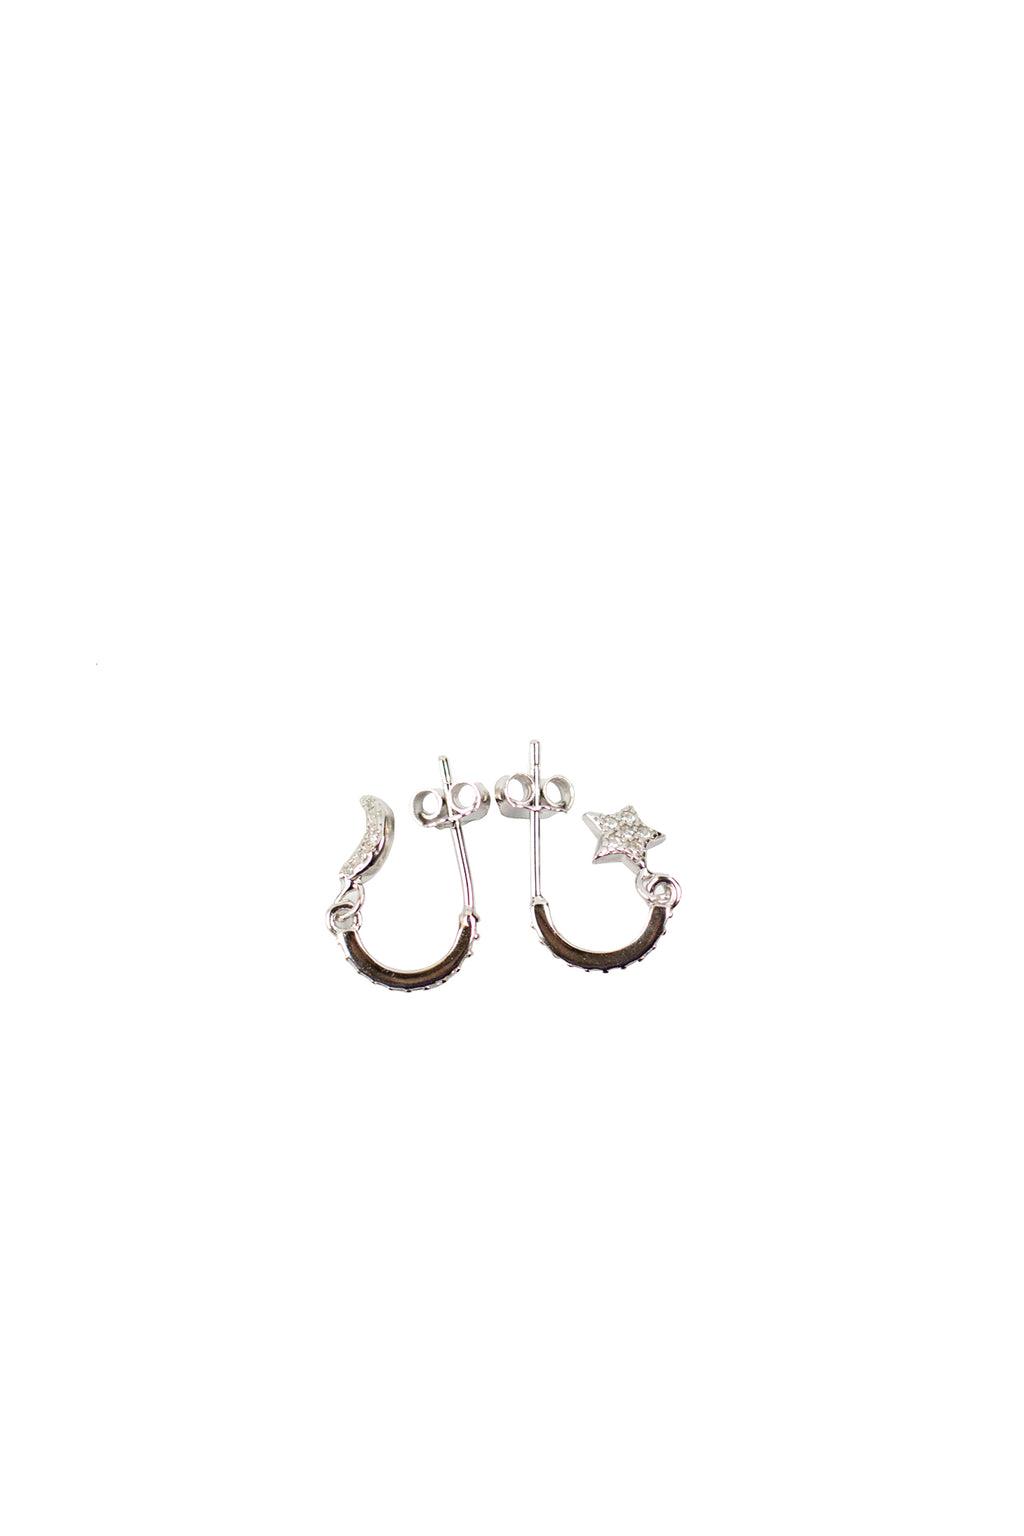 Shadow -  White plated w/ Moon and Star white stone  Earrings